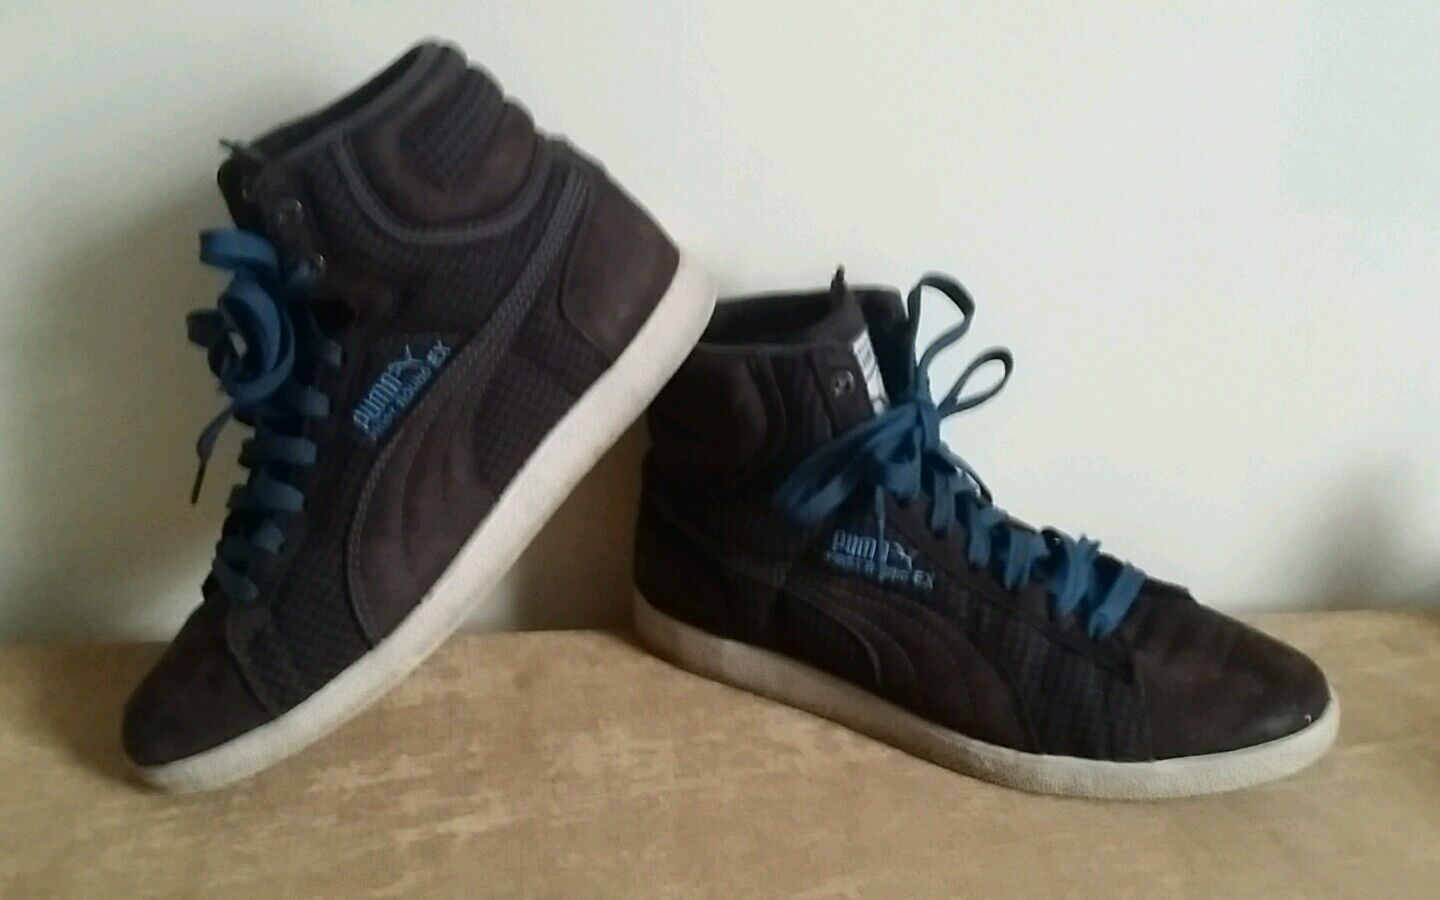 Puma first round ex mens / ladies older boys / trainers girls brown high top trainers / 5 427ea8